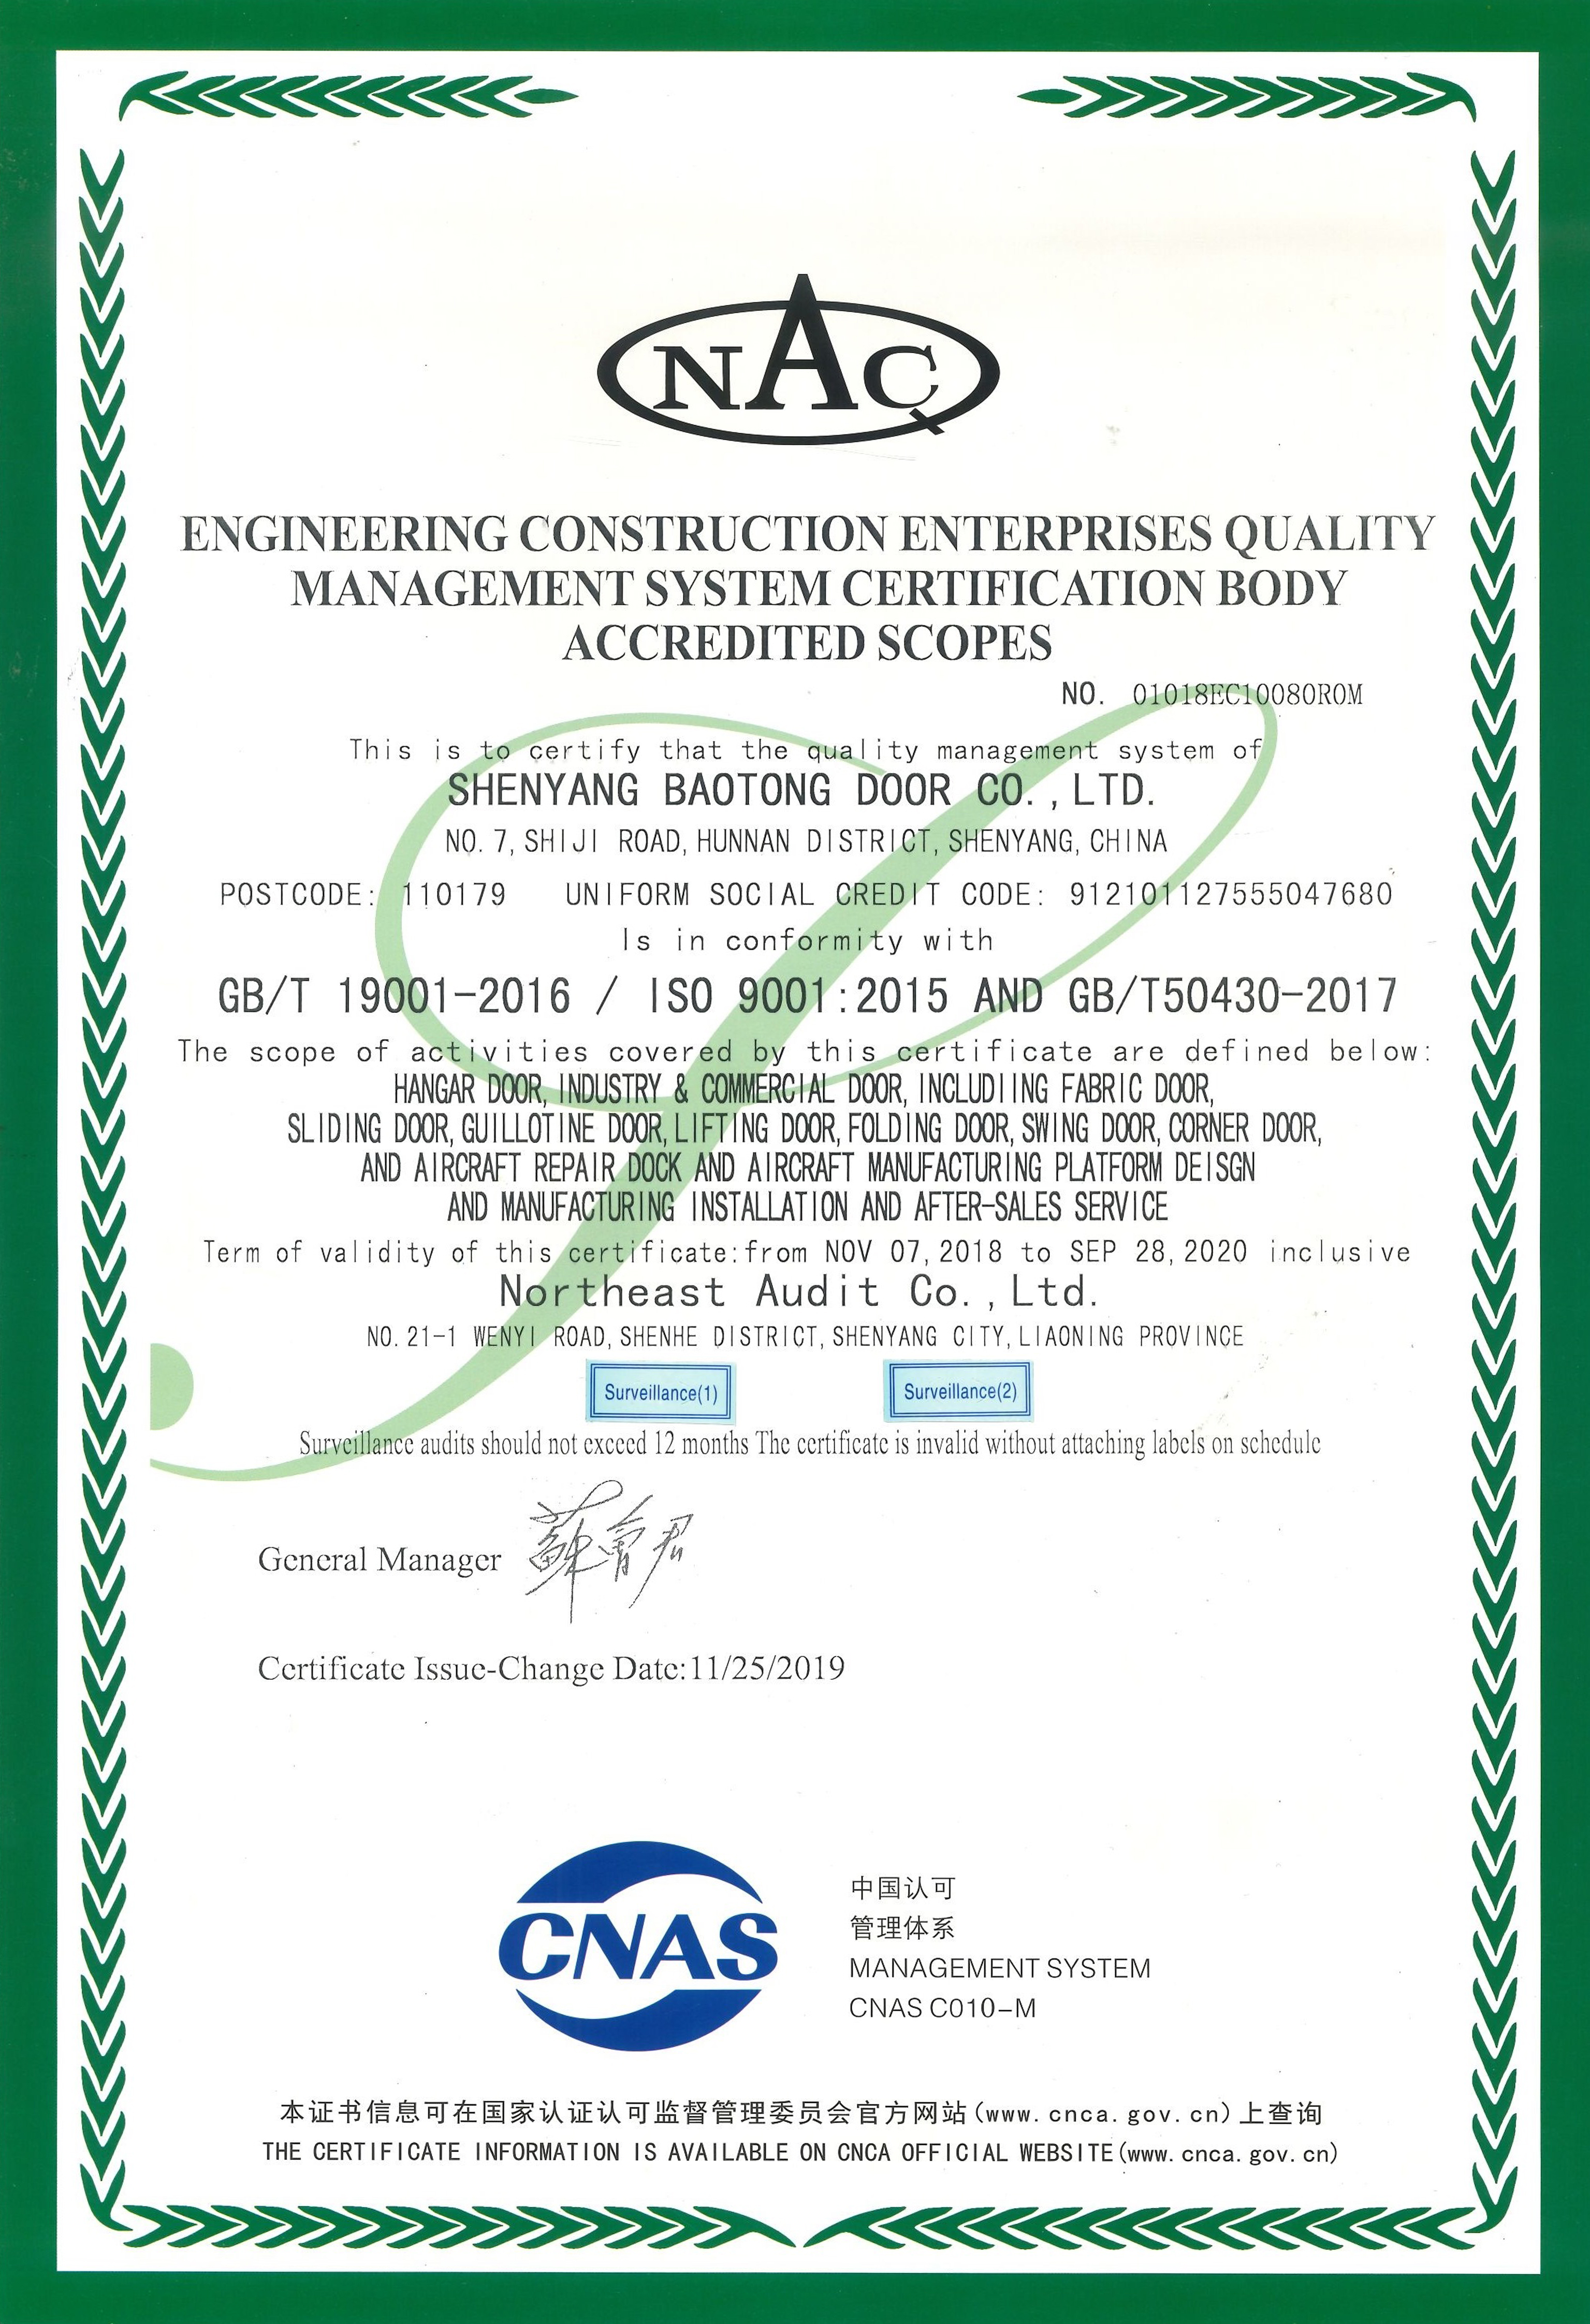 Certificate of Quality Management System for Engineering Construction Enterprises (English)